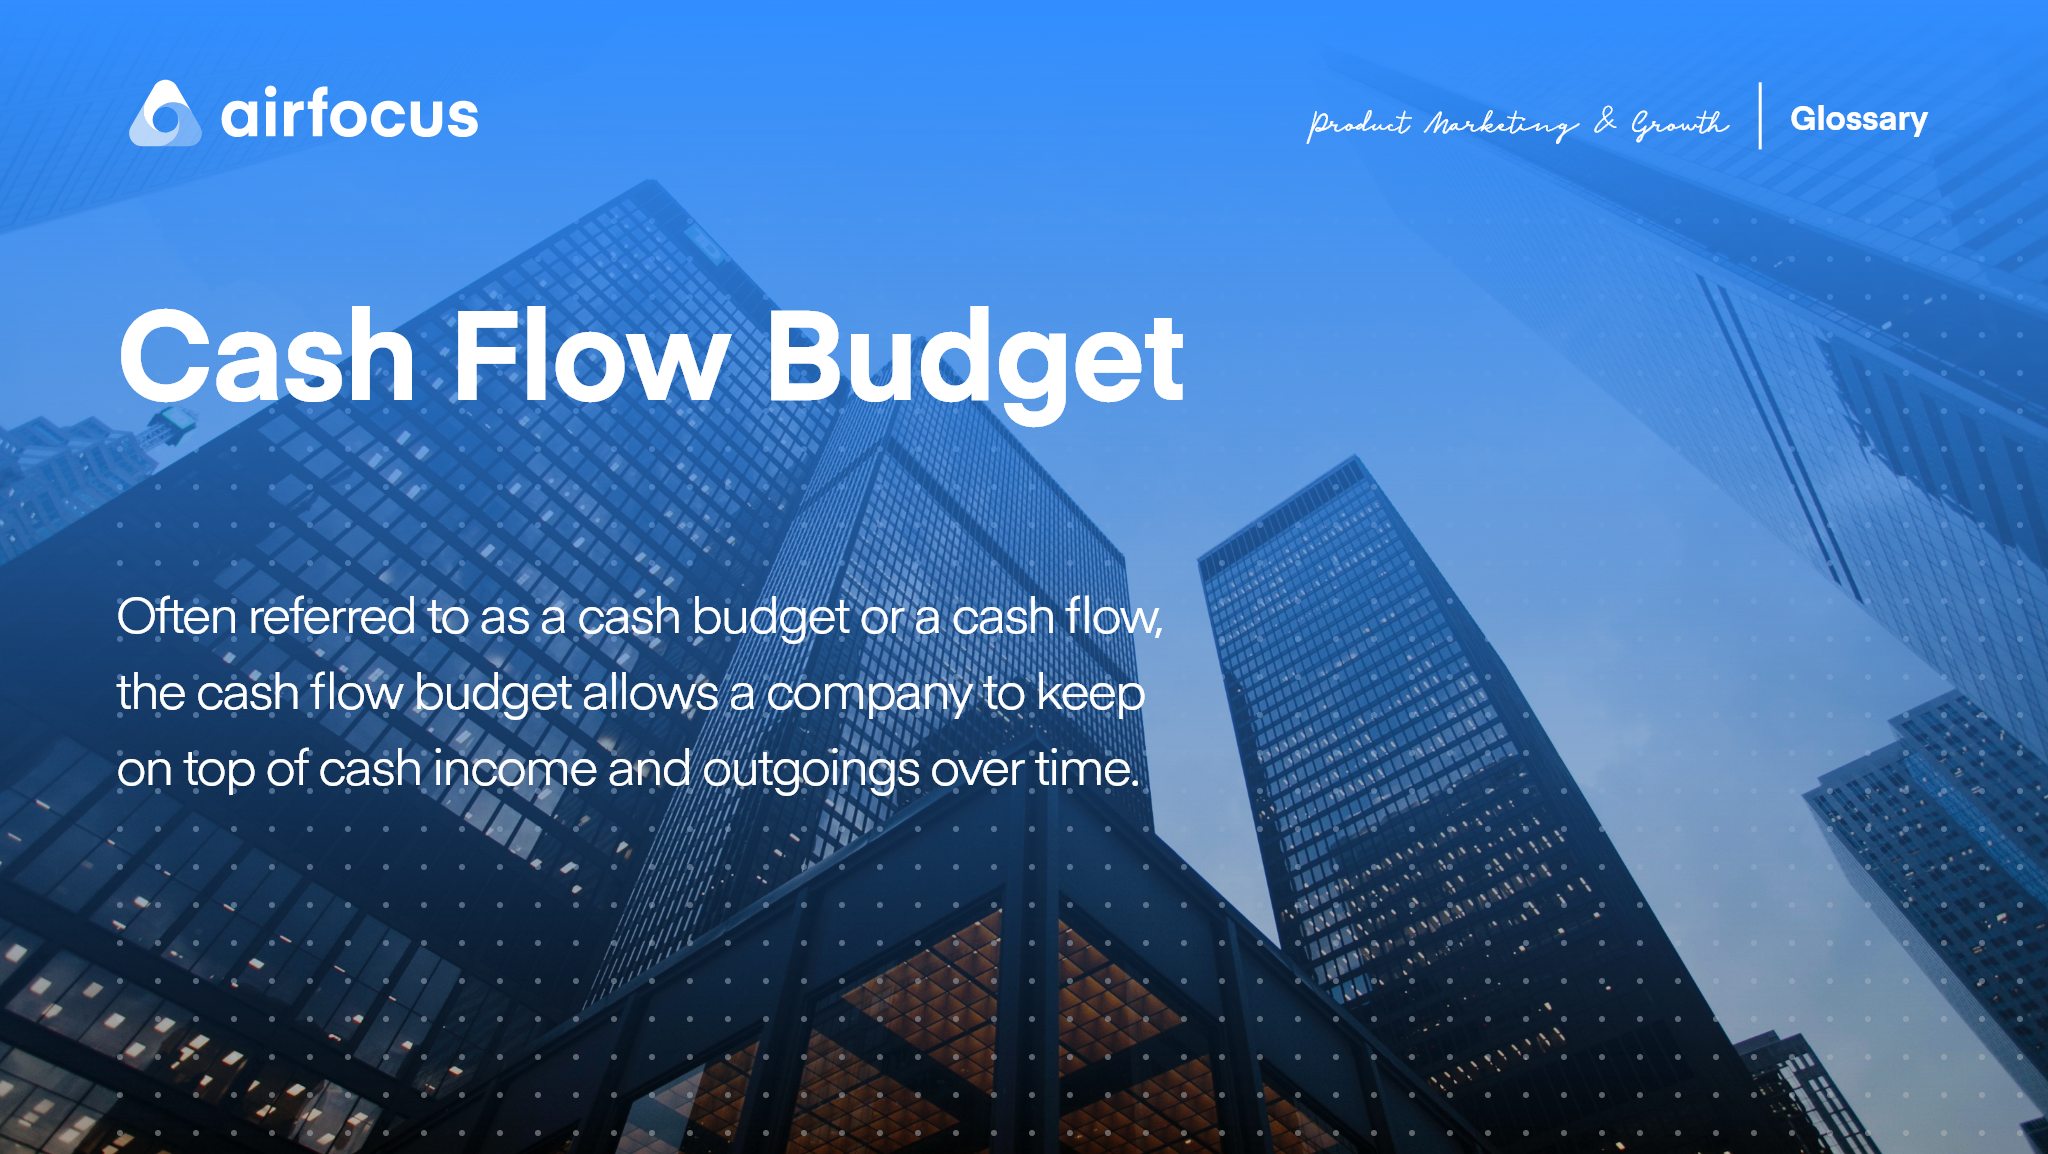 What is a Cash Flow Budget